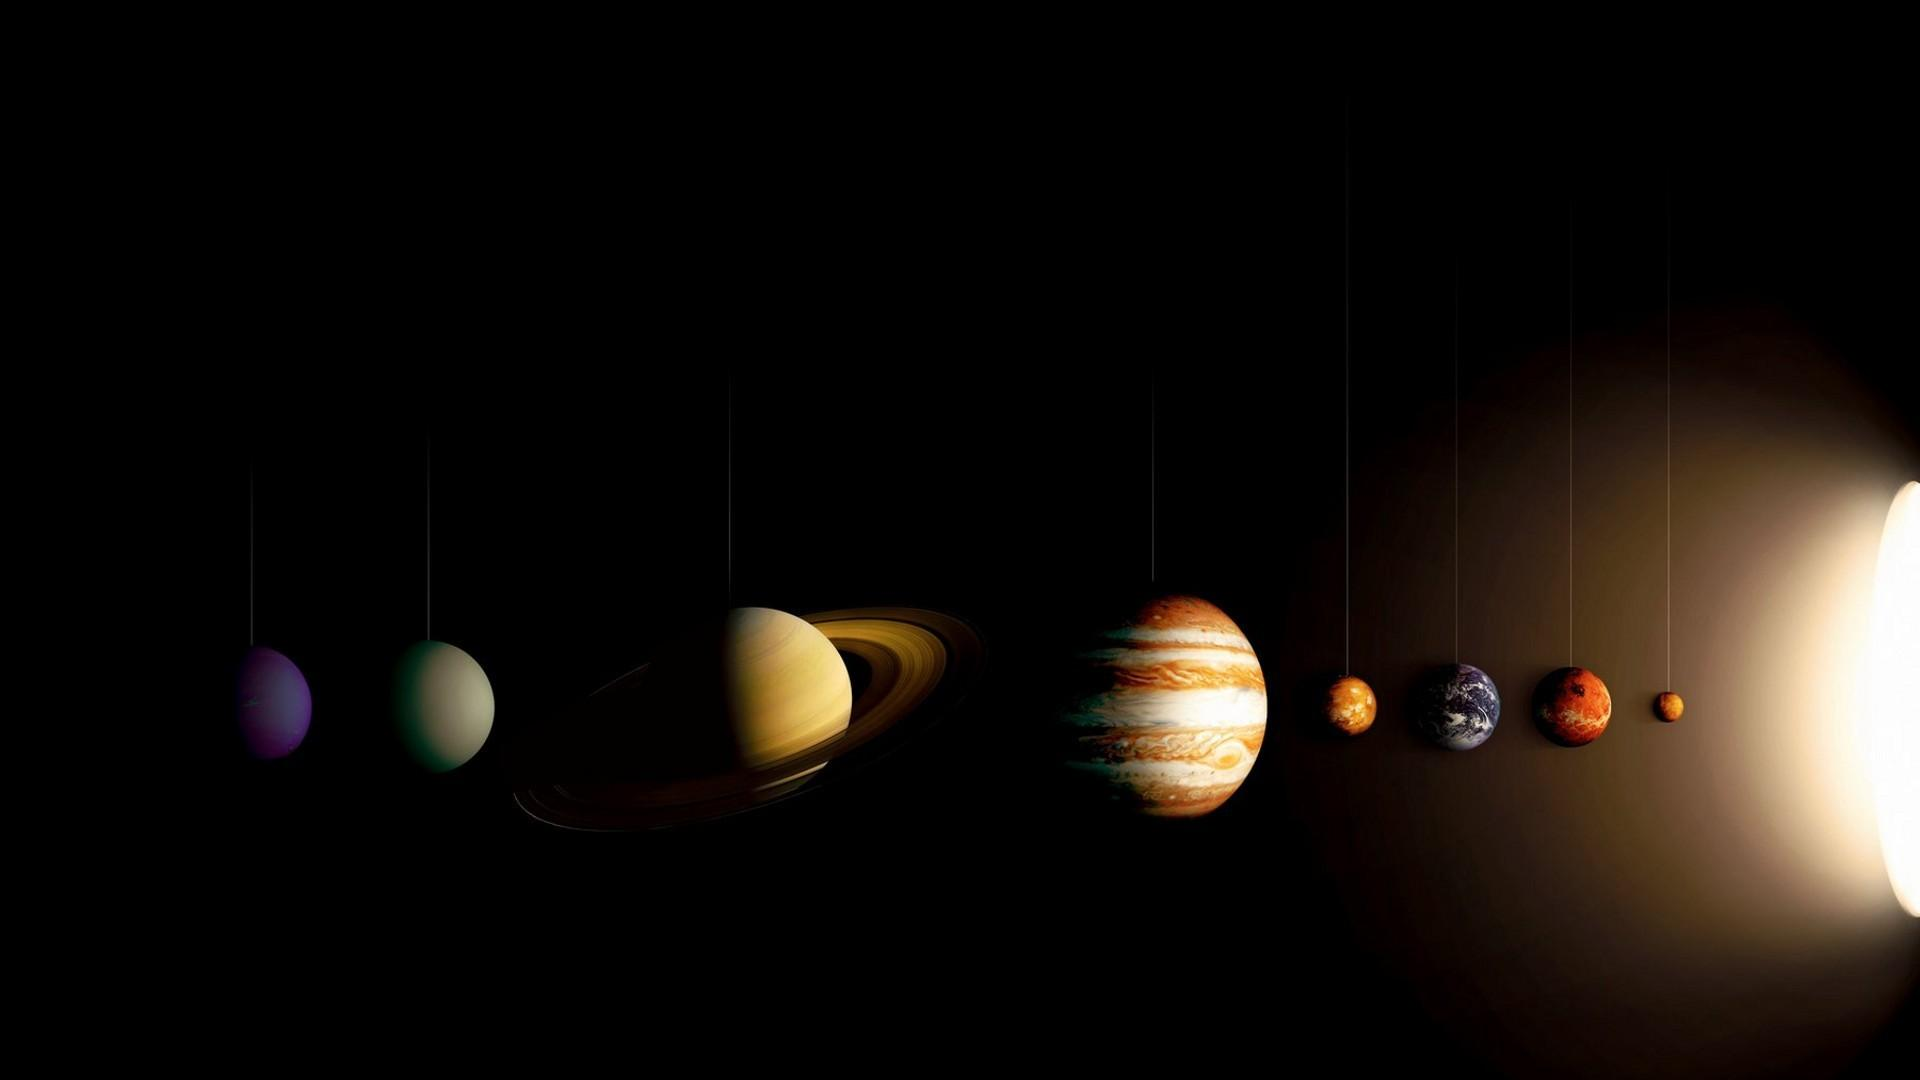 Download Solar System Wallpaper Hd Backgrounds Download